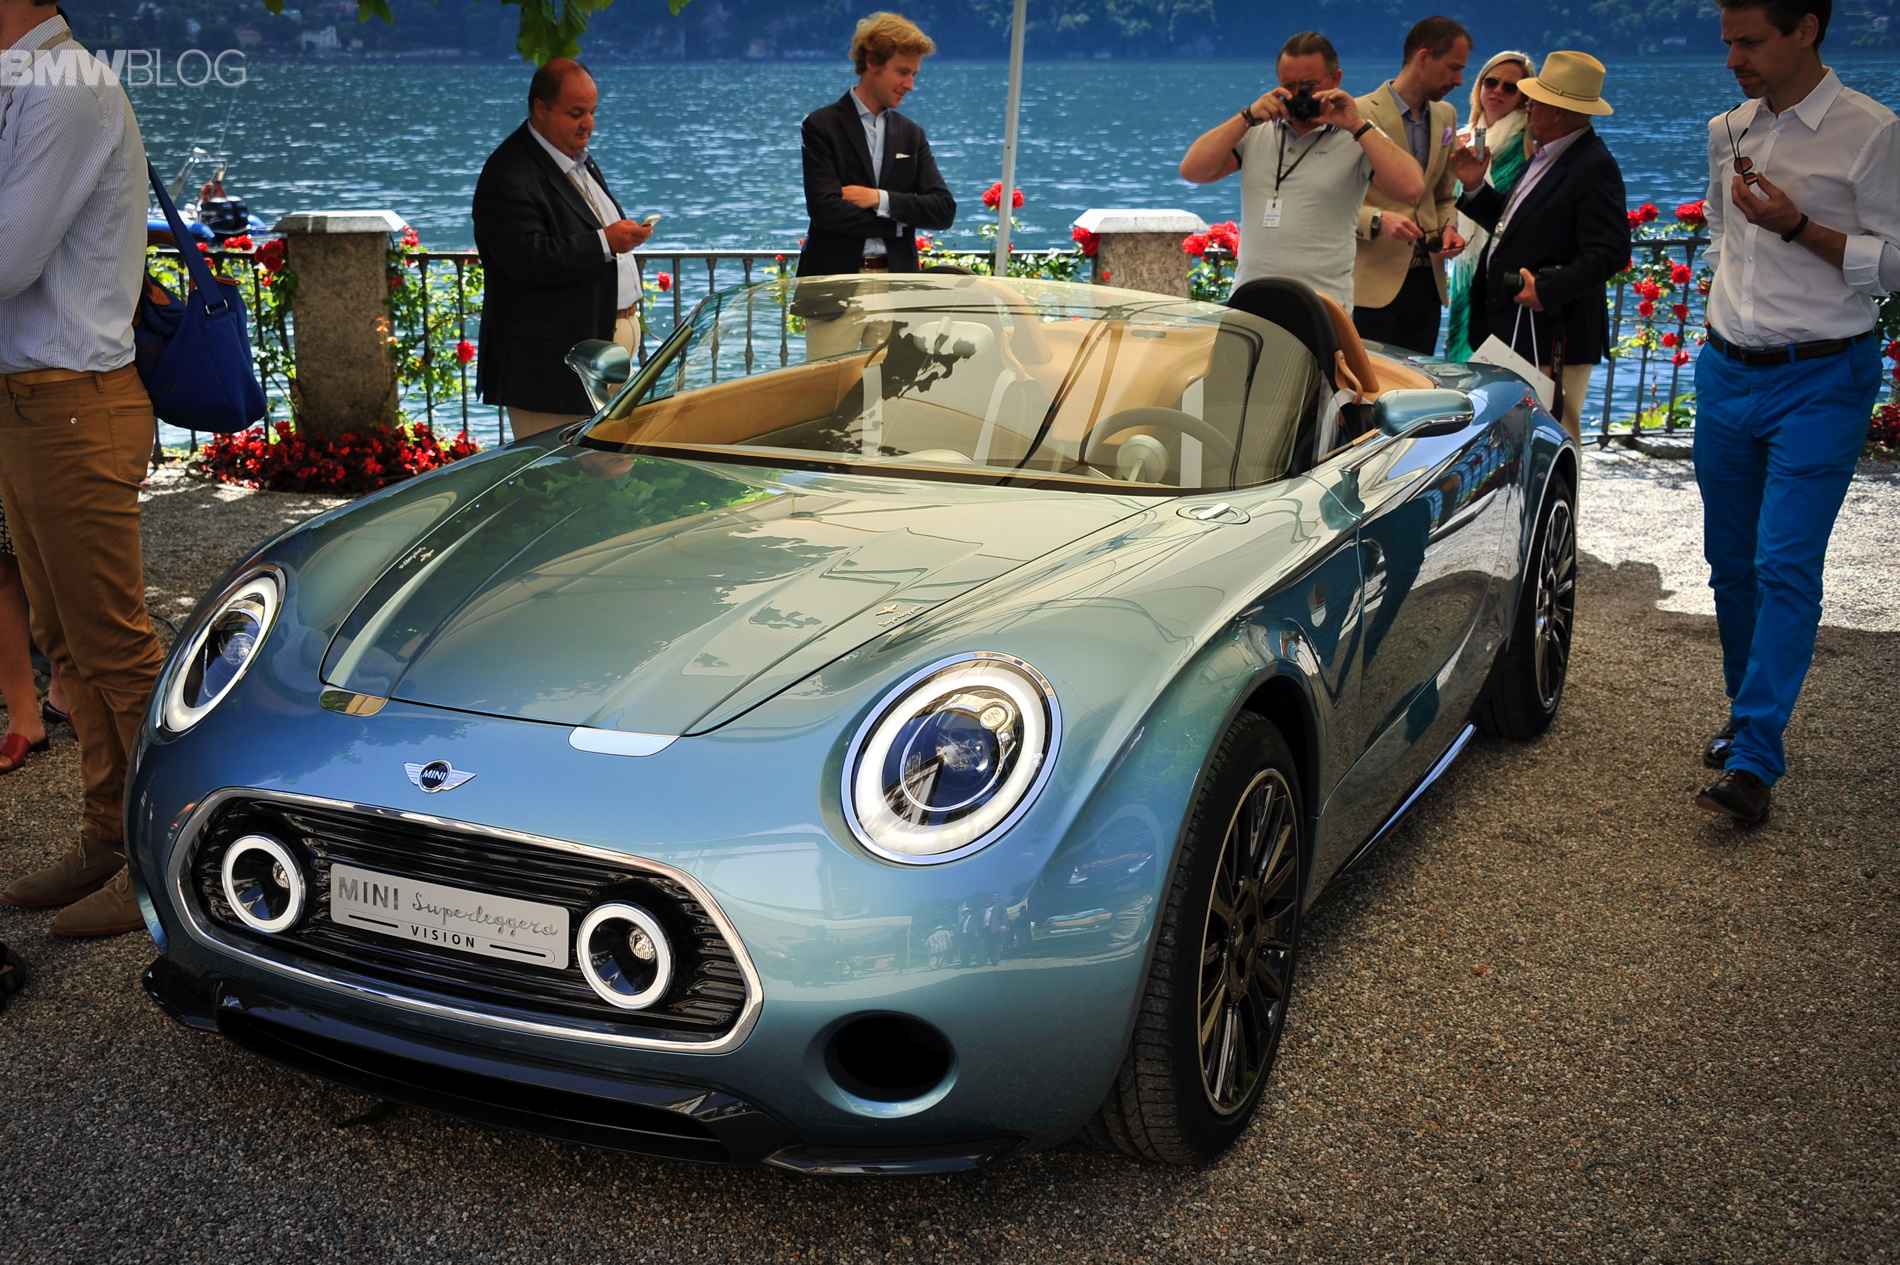 MINI Superleggera Vision villa deste 01